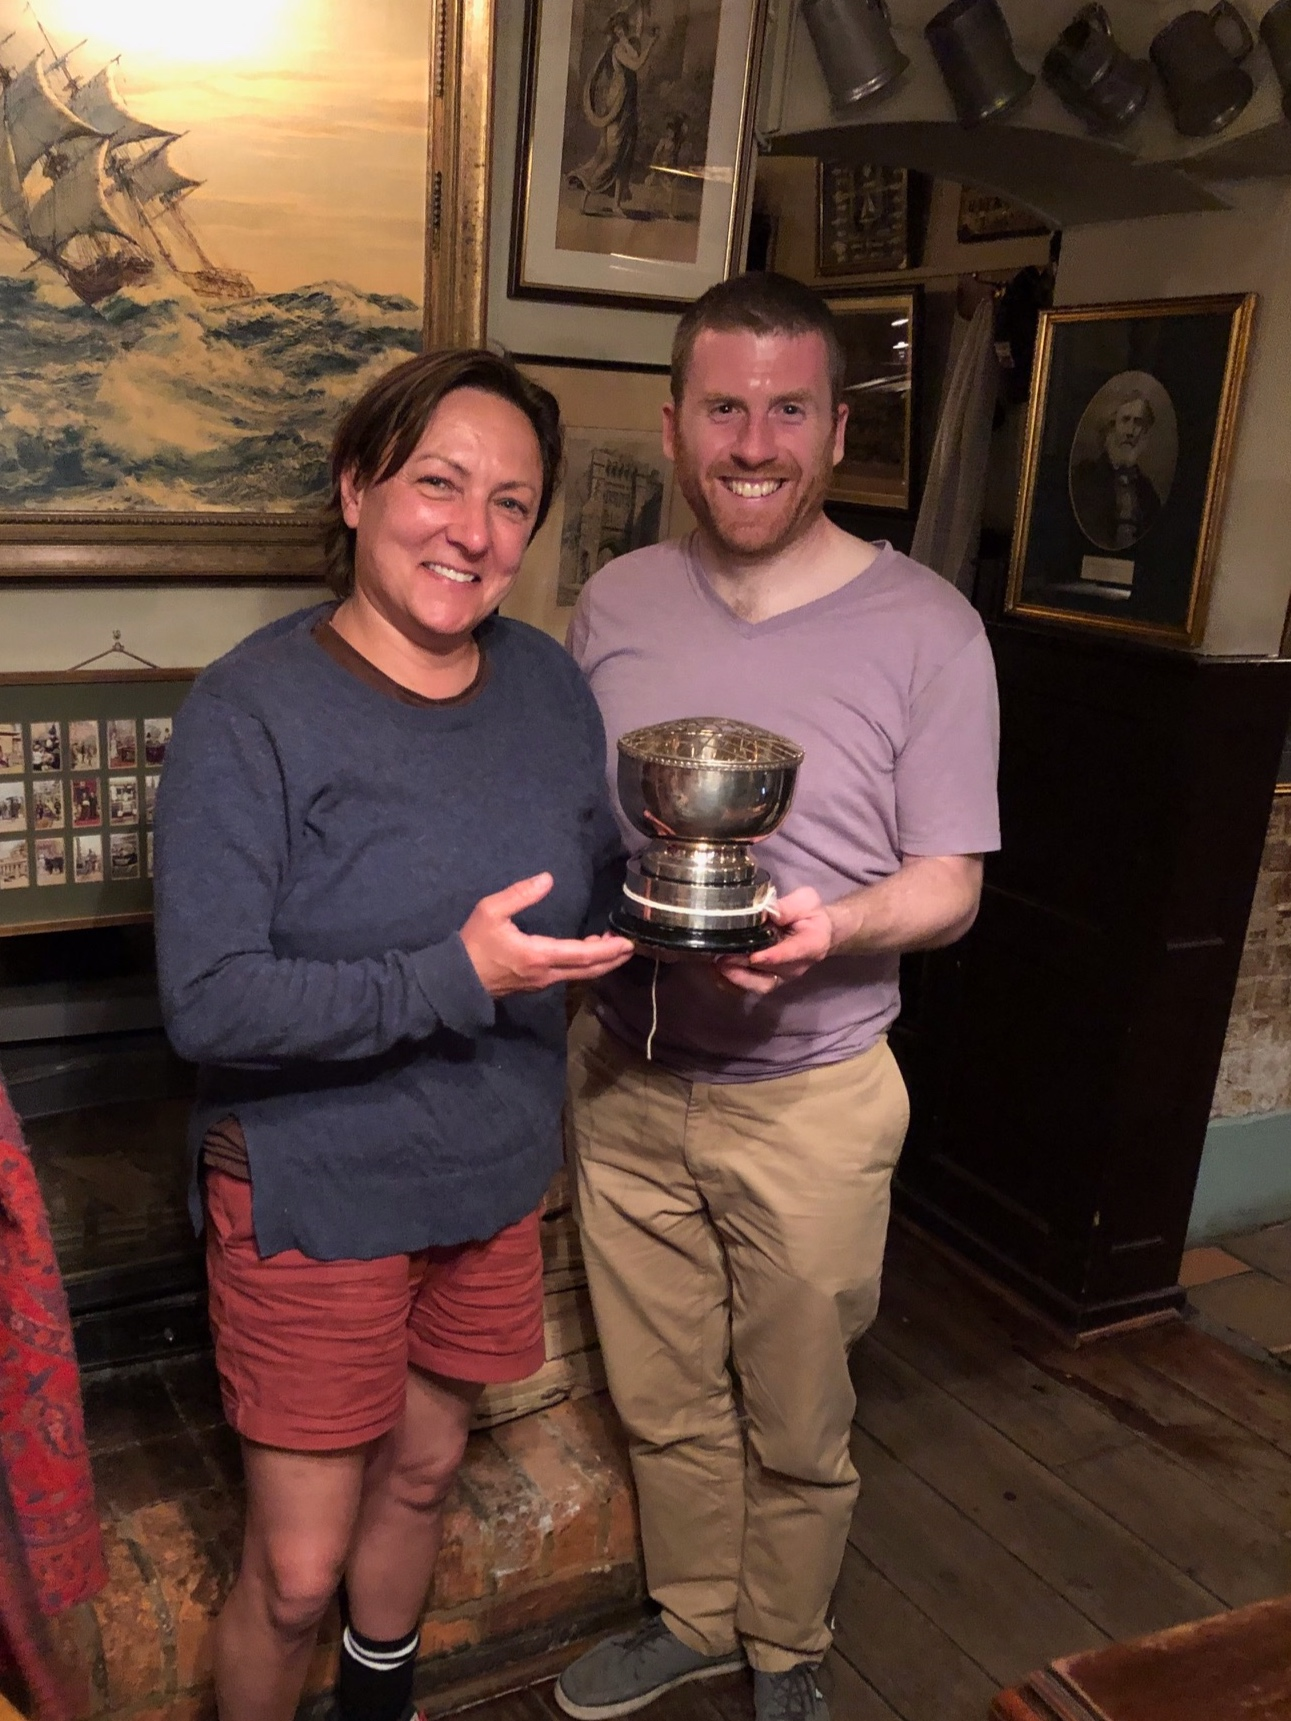 Giles Munn and Wendy Carling celebrating their 2019 victory. You have a year to clean the cup Giles!!